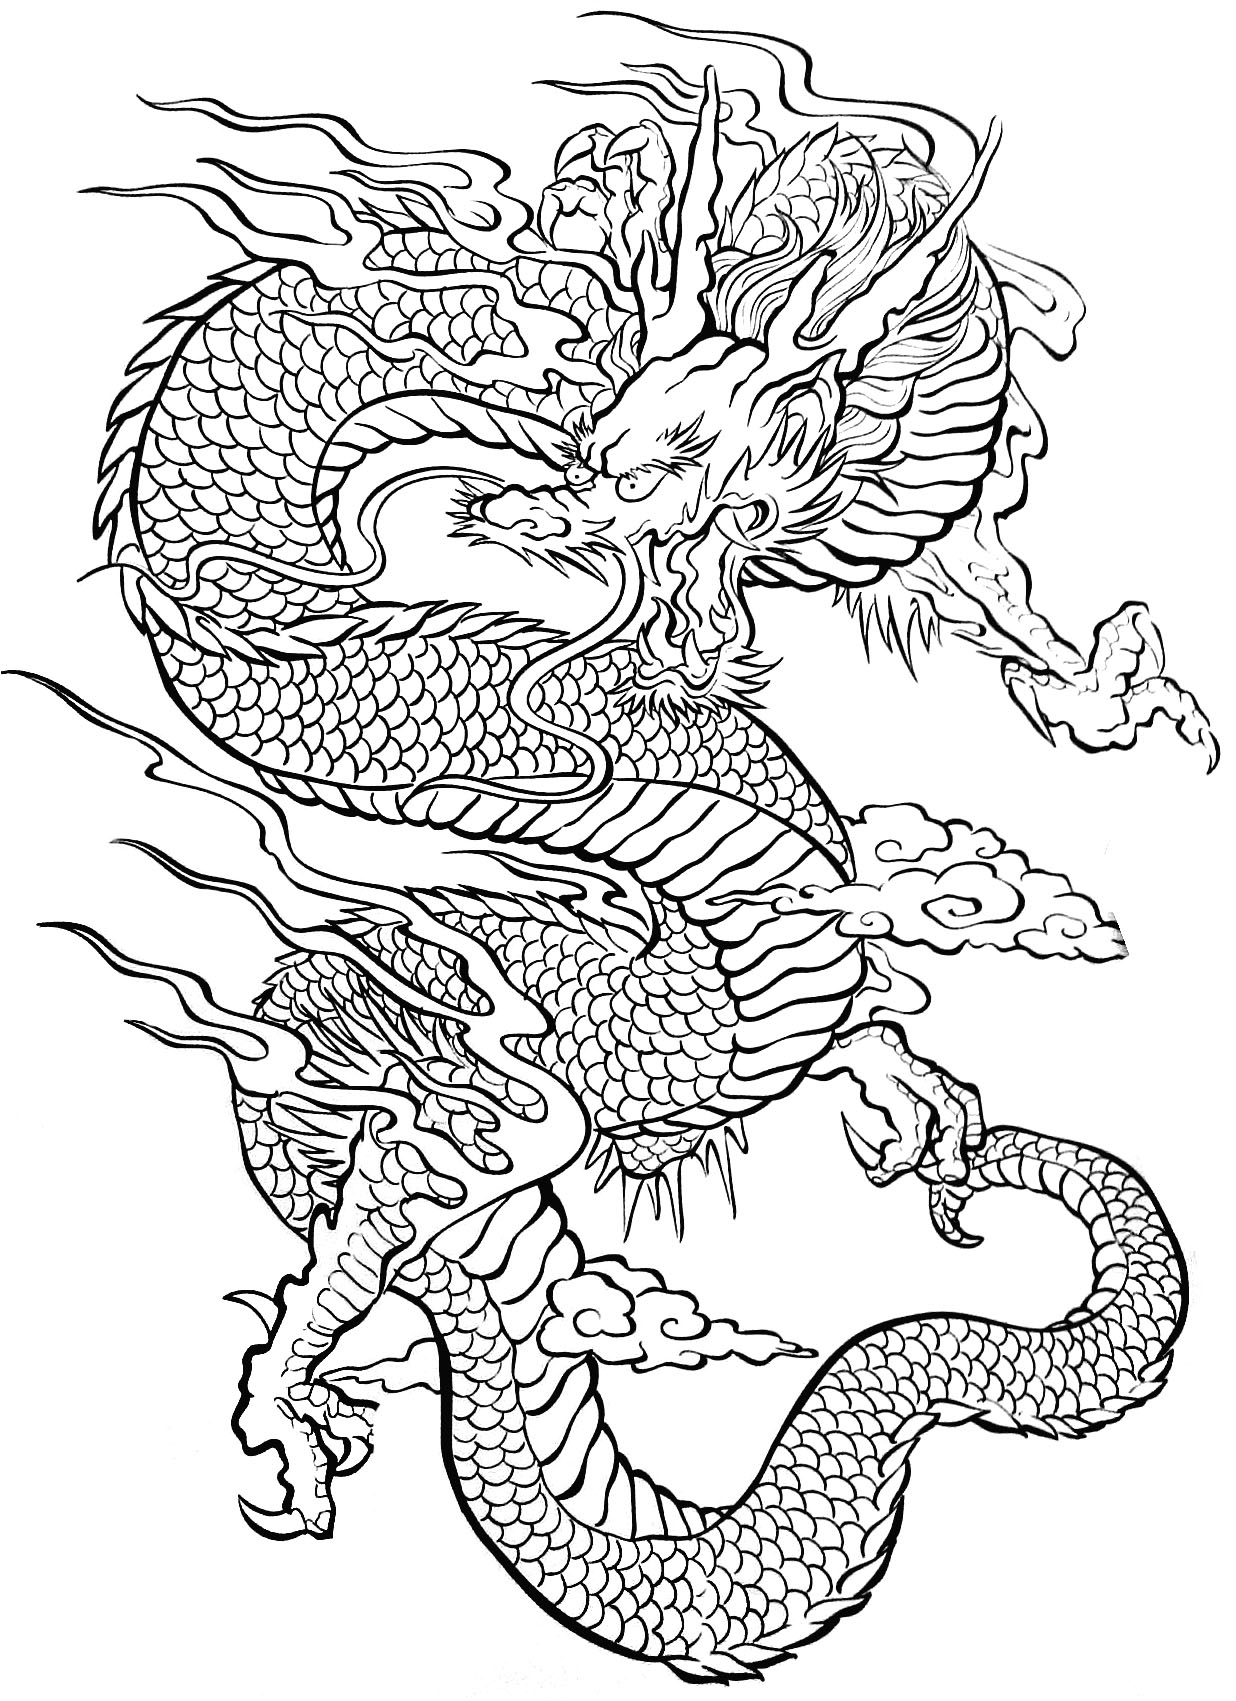 tattoo dragon tattoos adult coloring pages. Black Bedroom Furniture Sets. Home Design Ideas